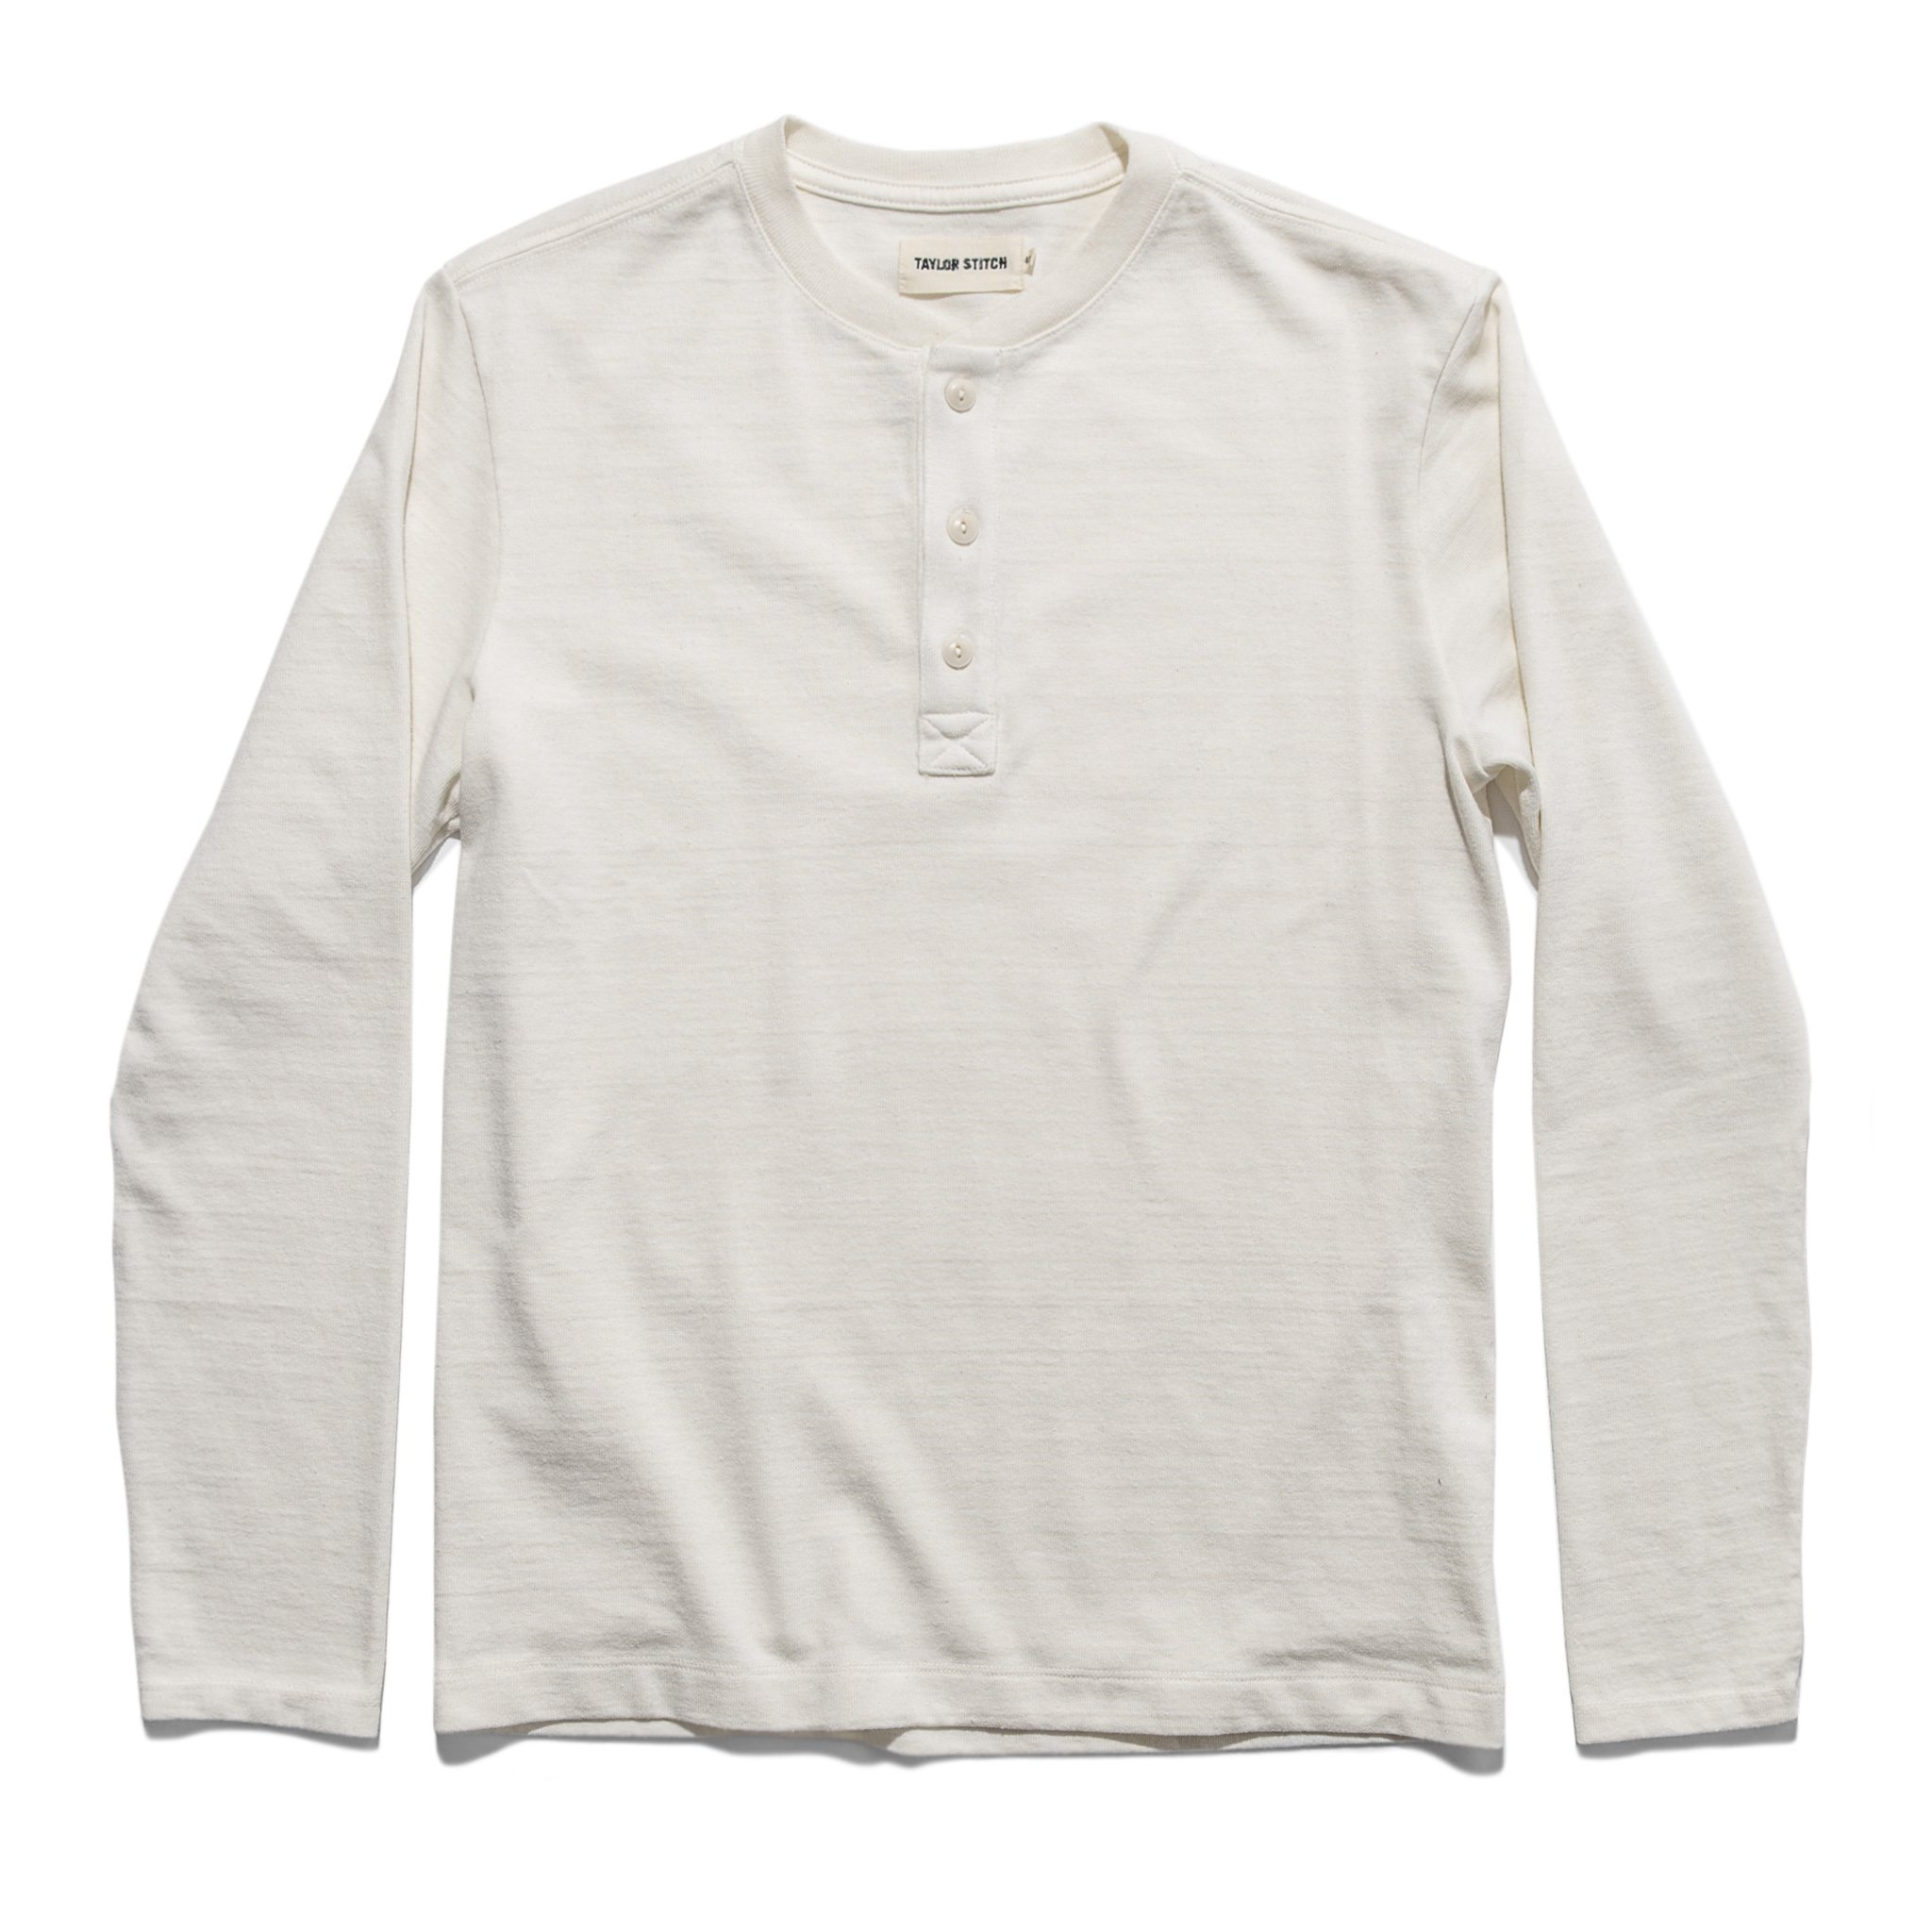 Taylor stitch heavy bag henley shirt in natural color